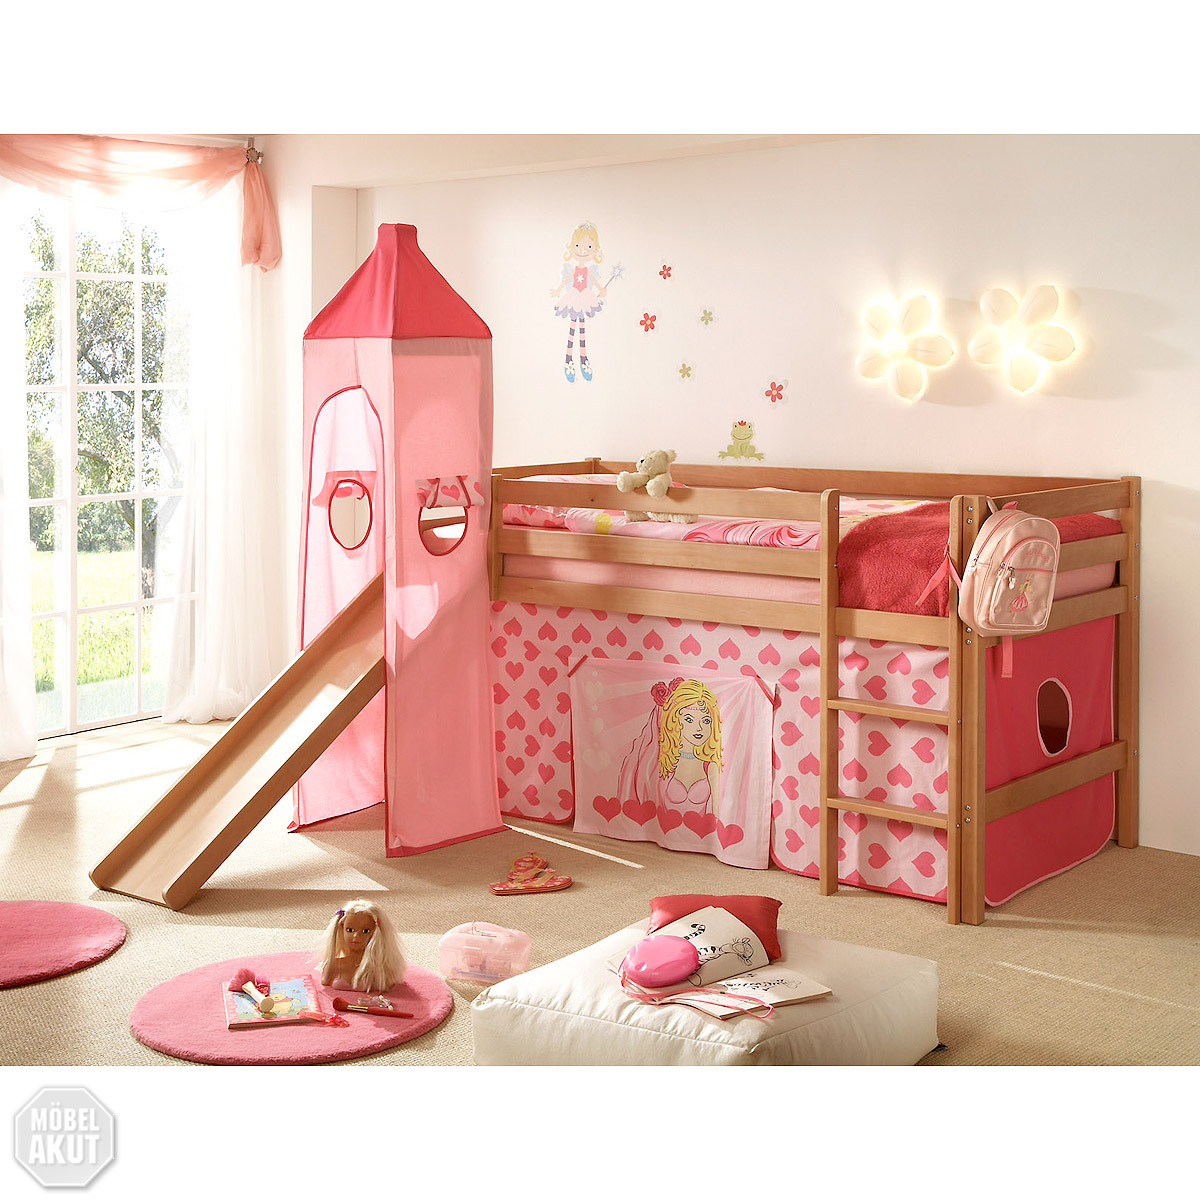 hochbett snoopy kinderbett etagenbett in buche massiv turm rutsche vorhang ebay. Black Bedroom Furniture Sets. Home Design Ideas